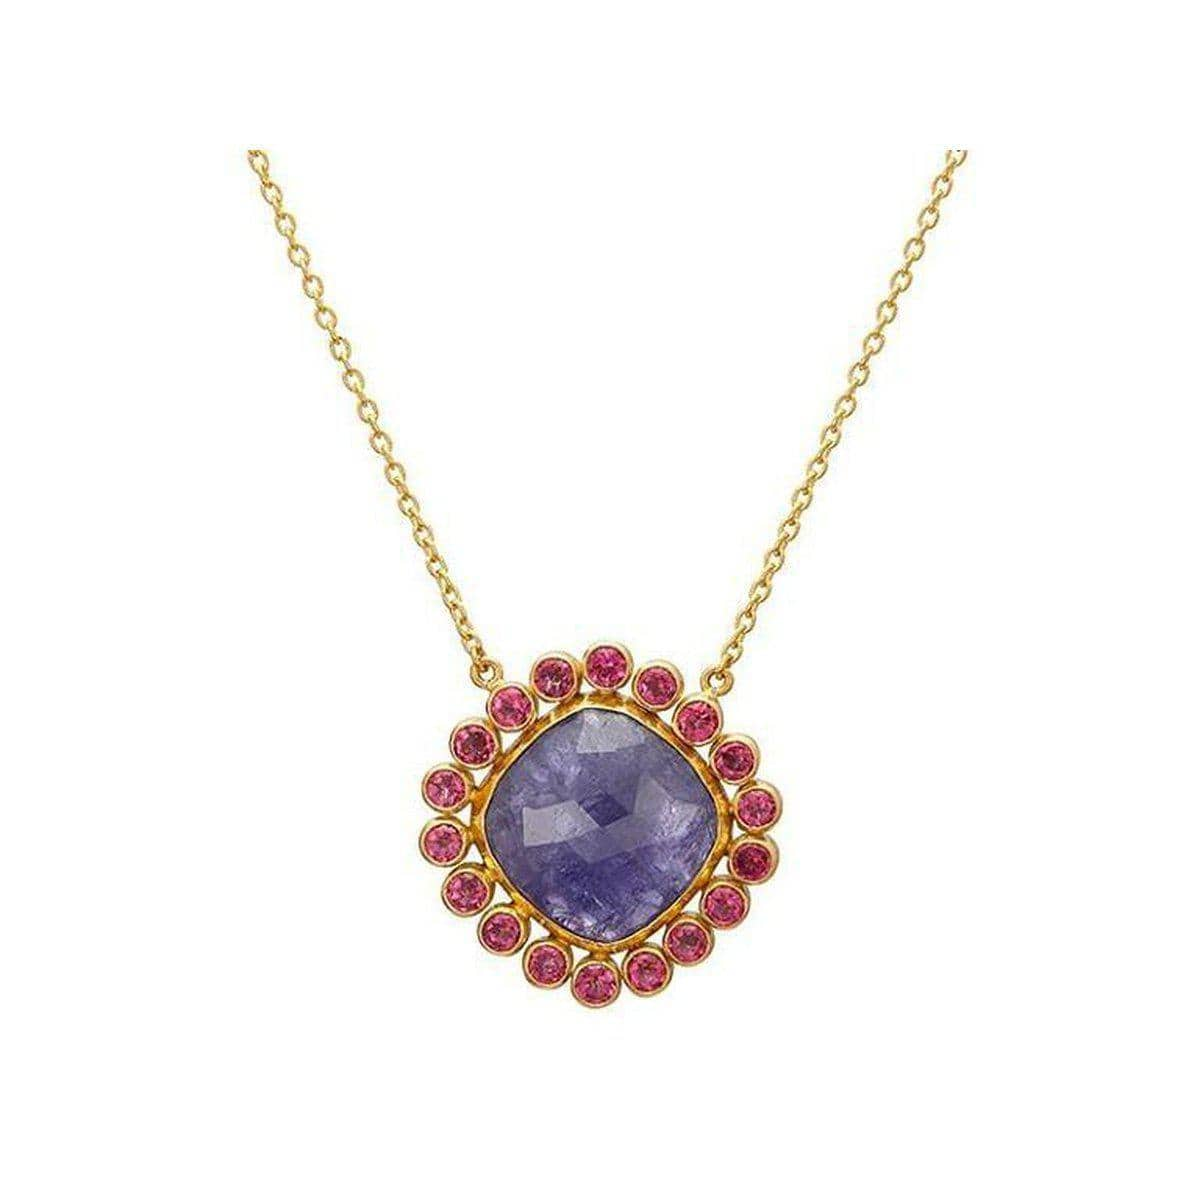 Elements 24K Gold Multi Stone Necklace - N-U25571-MS-GURHAN-Renee Taylor Gallery